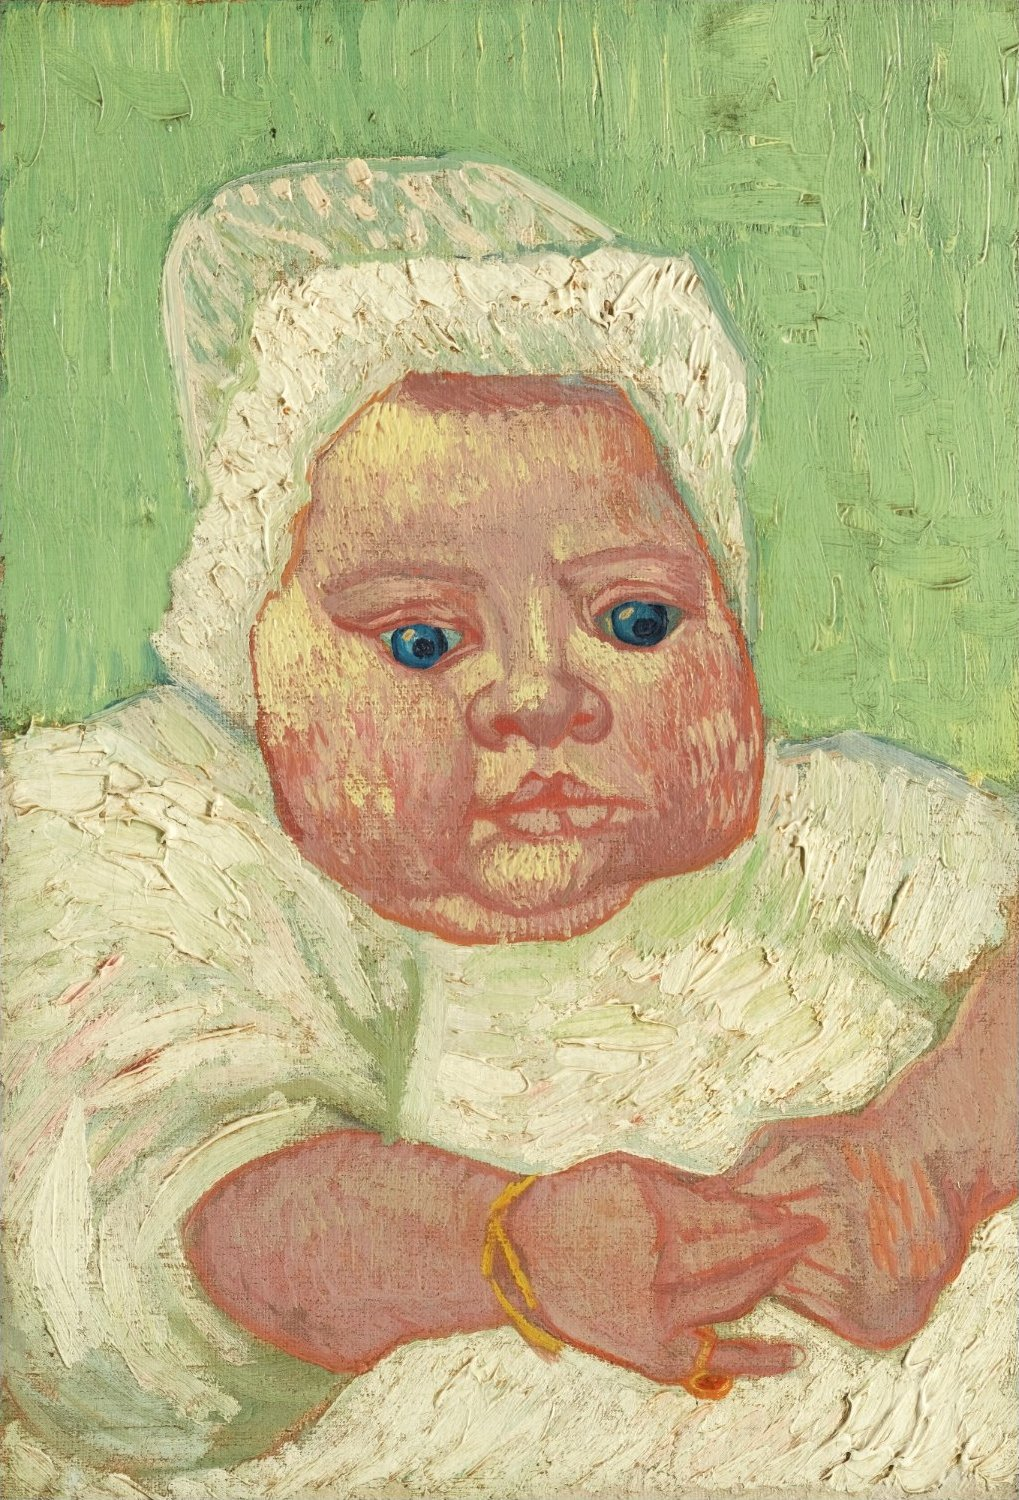 The Baby Marcelle Roulin 1888